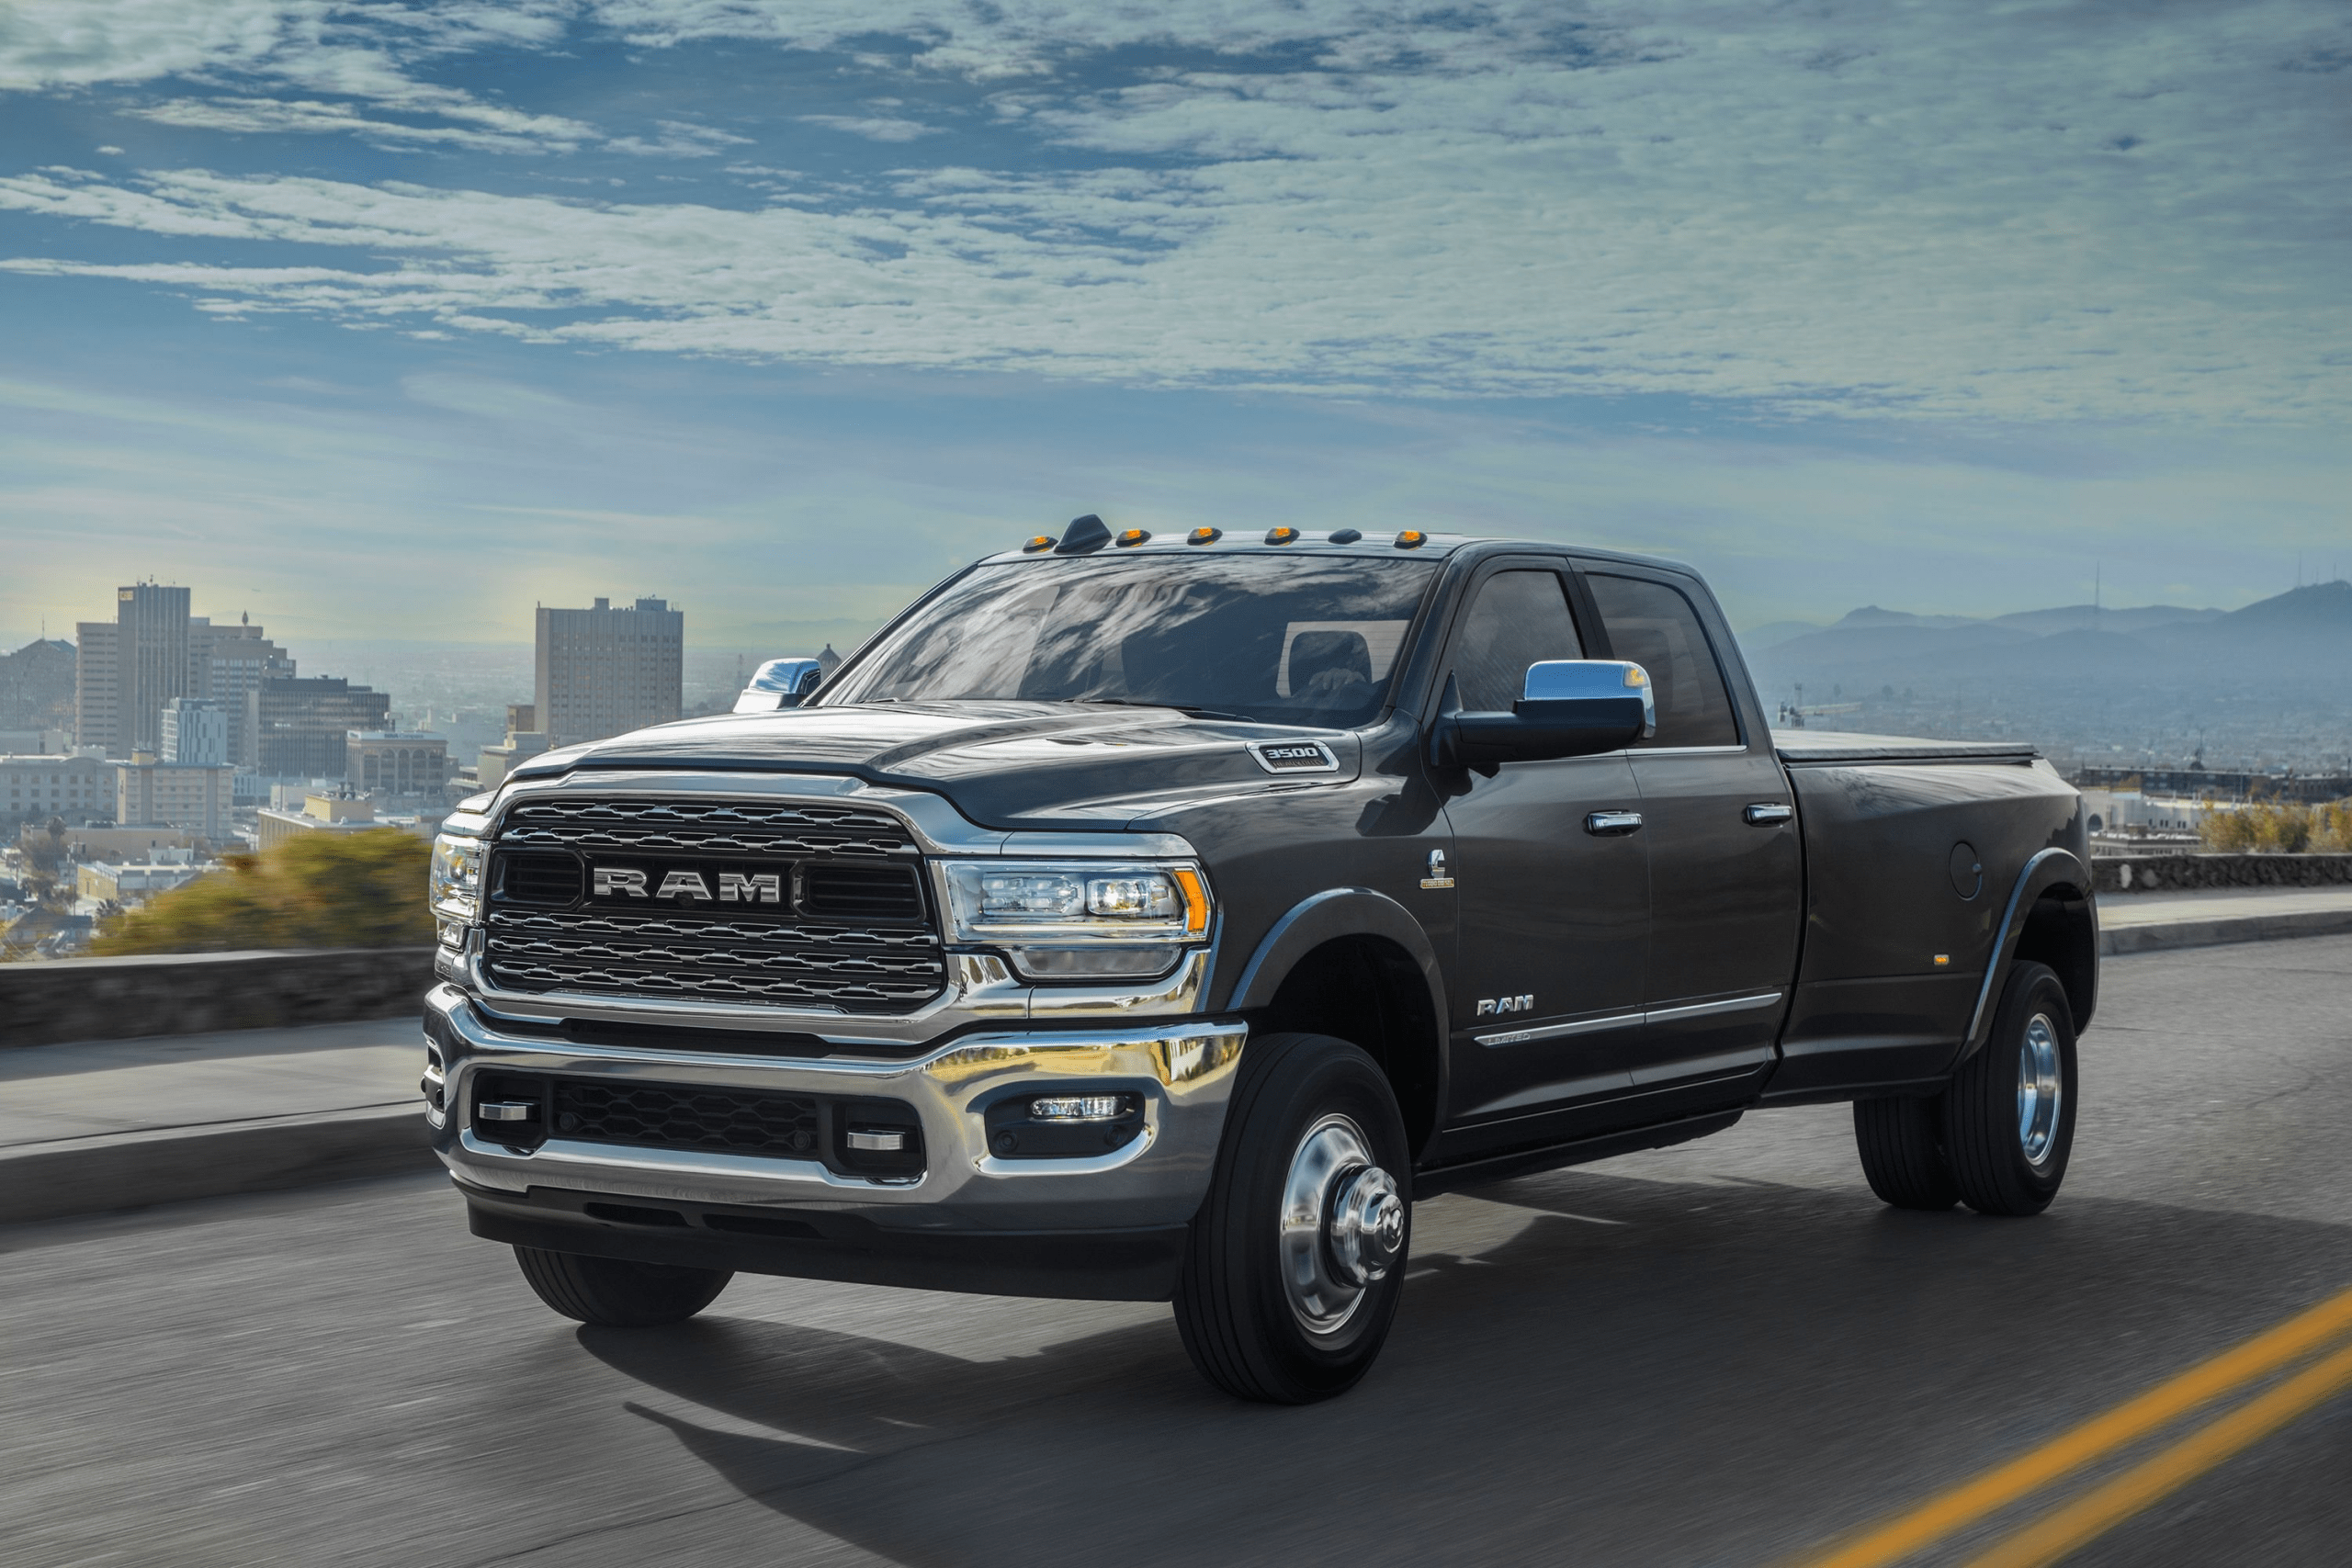 2020 Dodge Ram 3500 New Concept In 2020 Dodge Trucks Dodge Ram Dodge Ram 3500